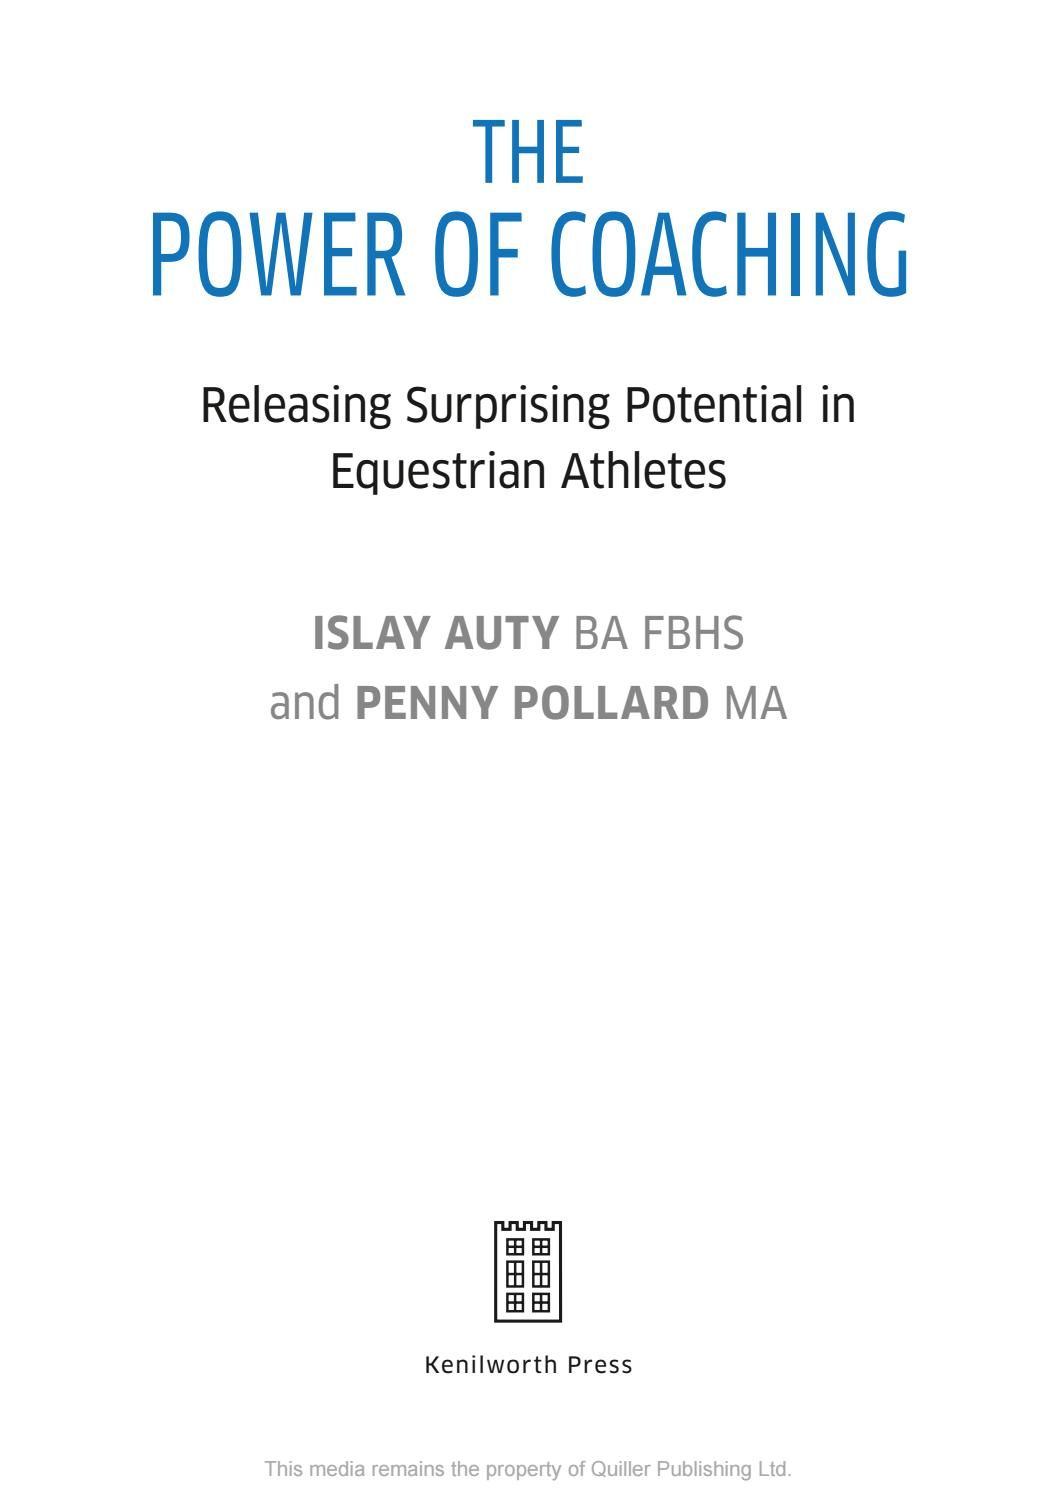 An innovative approach to coaching whereby the authors have merged their knowledge of equestrian sport with commercial business management enabling a more practical approach and the release of more potential in equestrian athletes